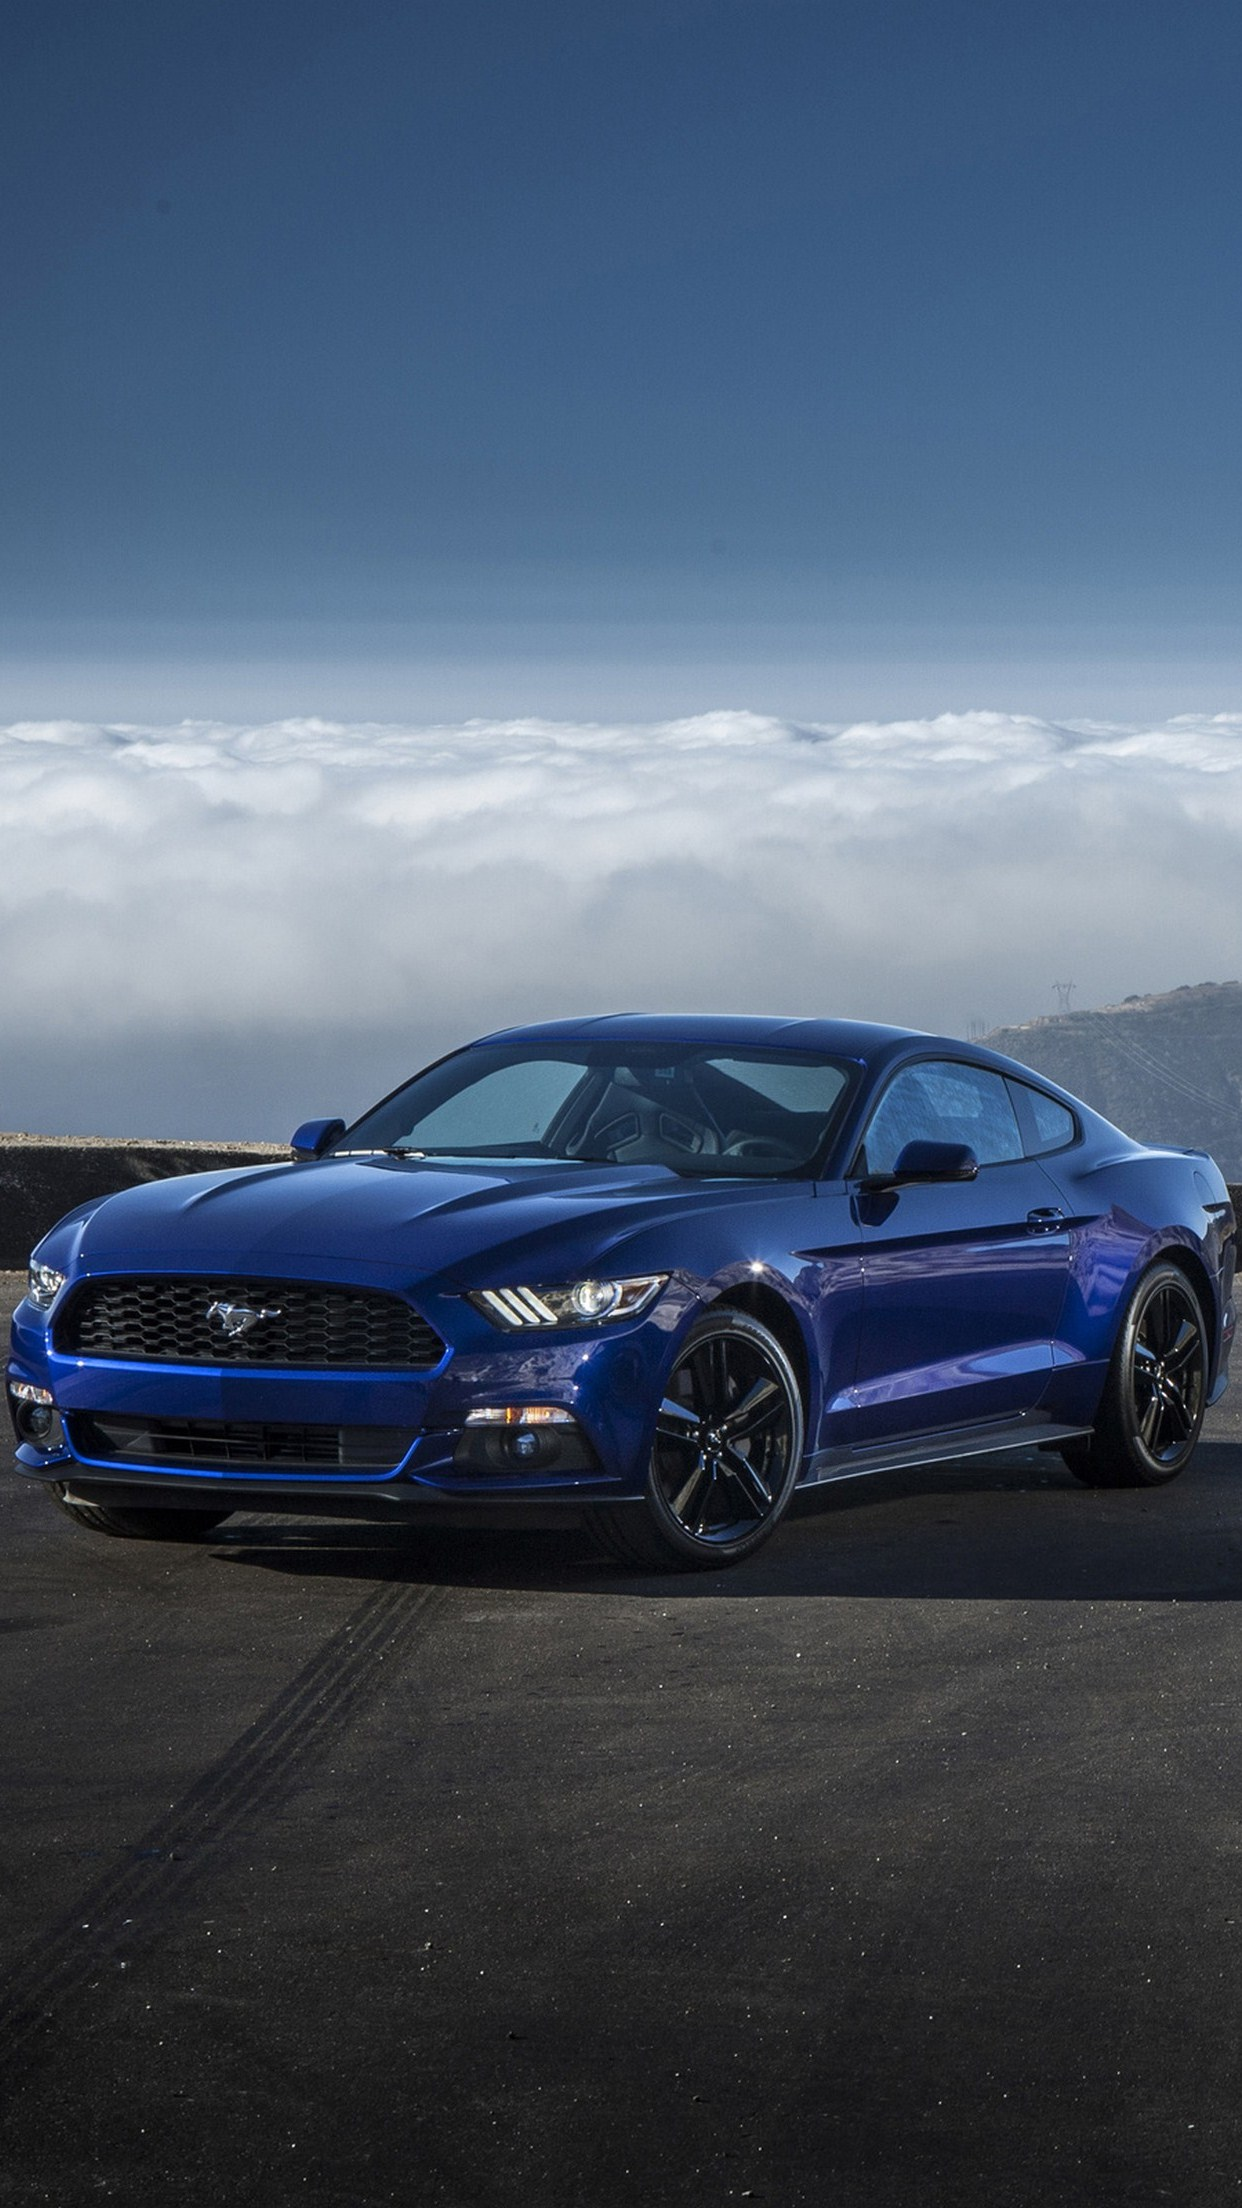 Gt500 Mustang 2015 >> Mustang 2015 Wallpaper Iphone | www.pixshark.com - Images Galleries With A Bite!